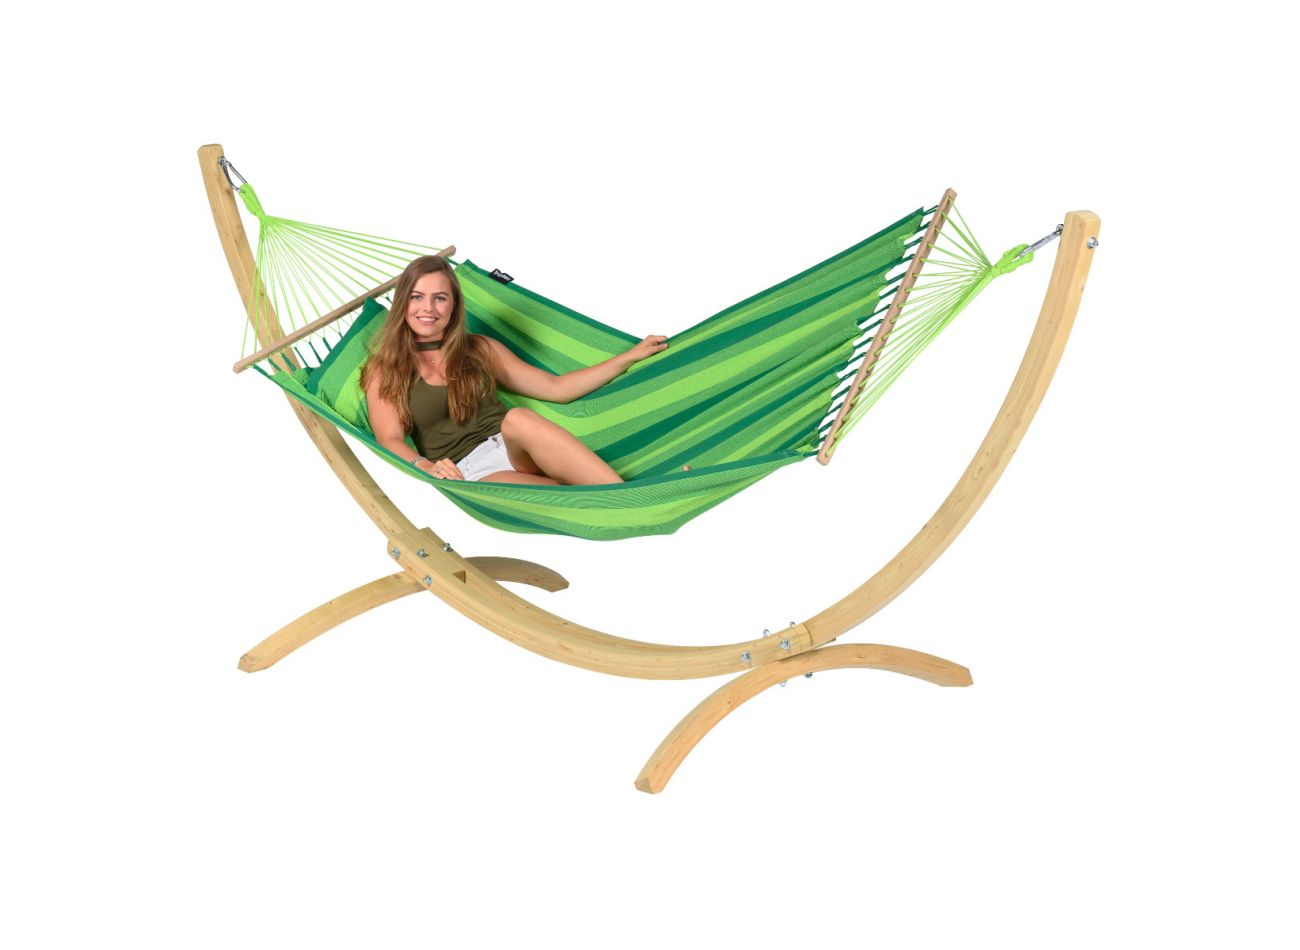 Hamac Sur Pied 1 Personne Wood & Relax Green